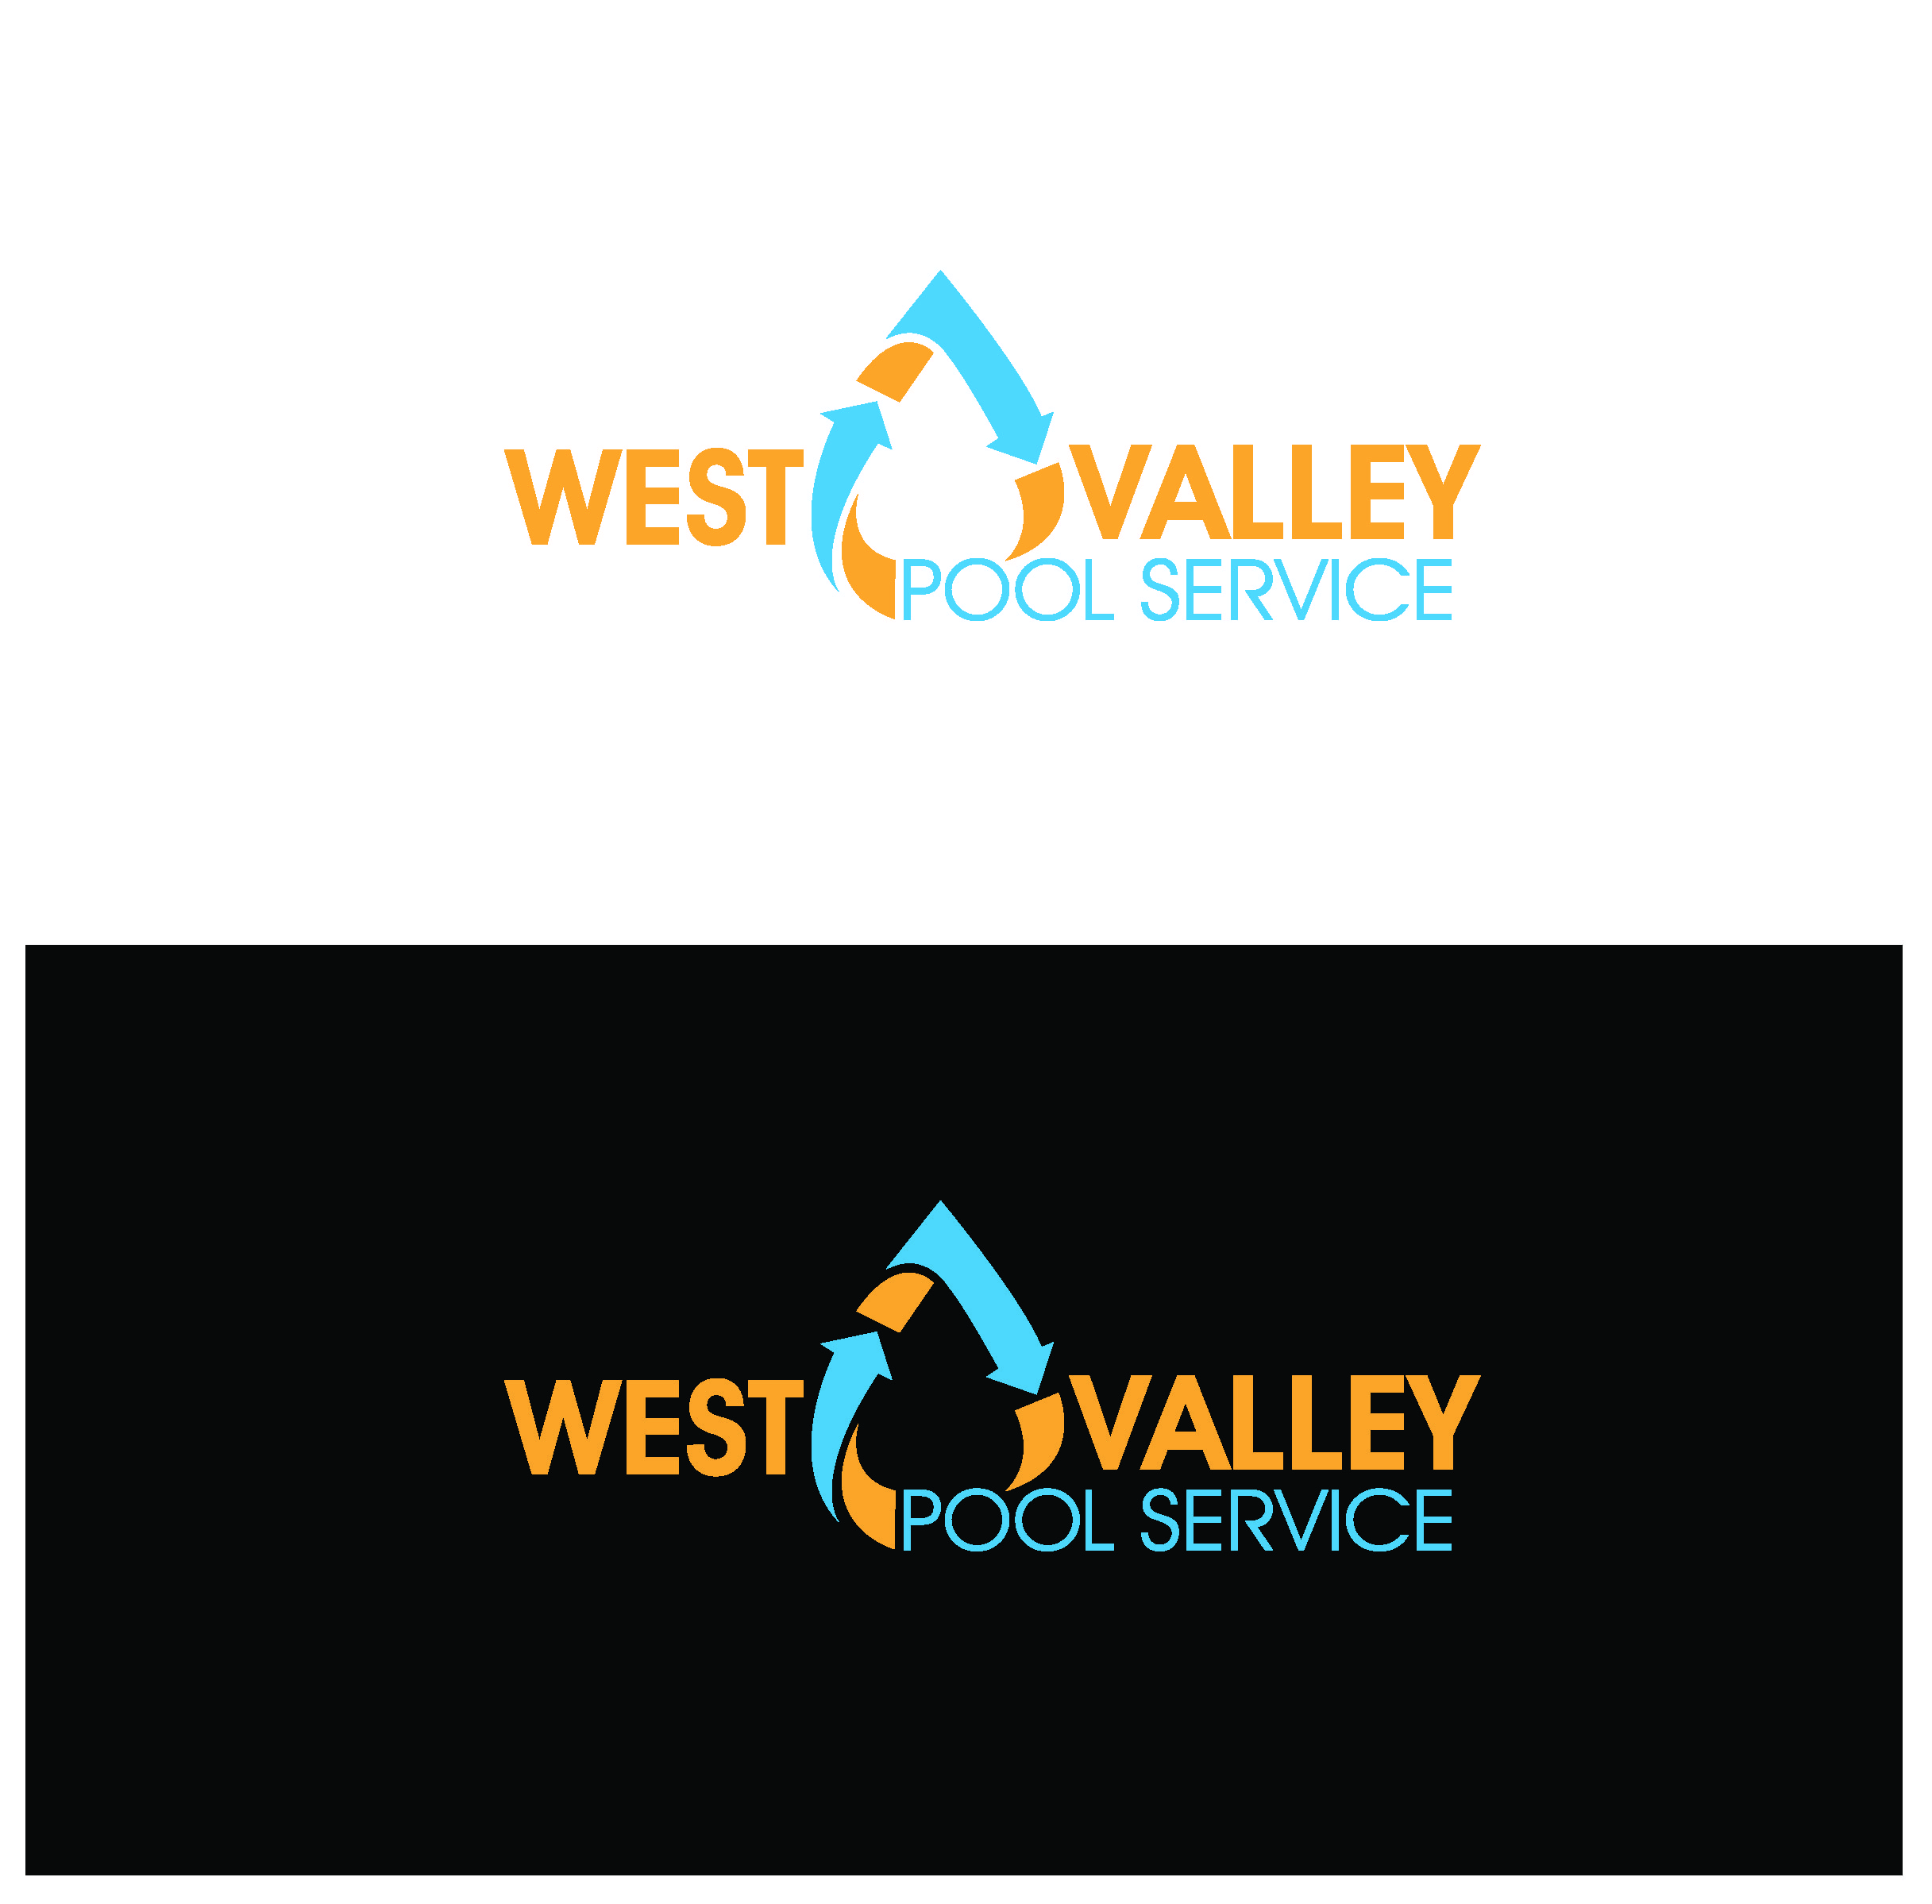 Logo Design by Sampath Gunathilaka - Entry No. 91 in the Logo Design Contest Clever Logo Design for West Valley Pool Service.